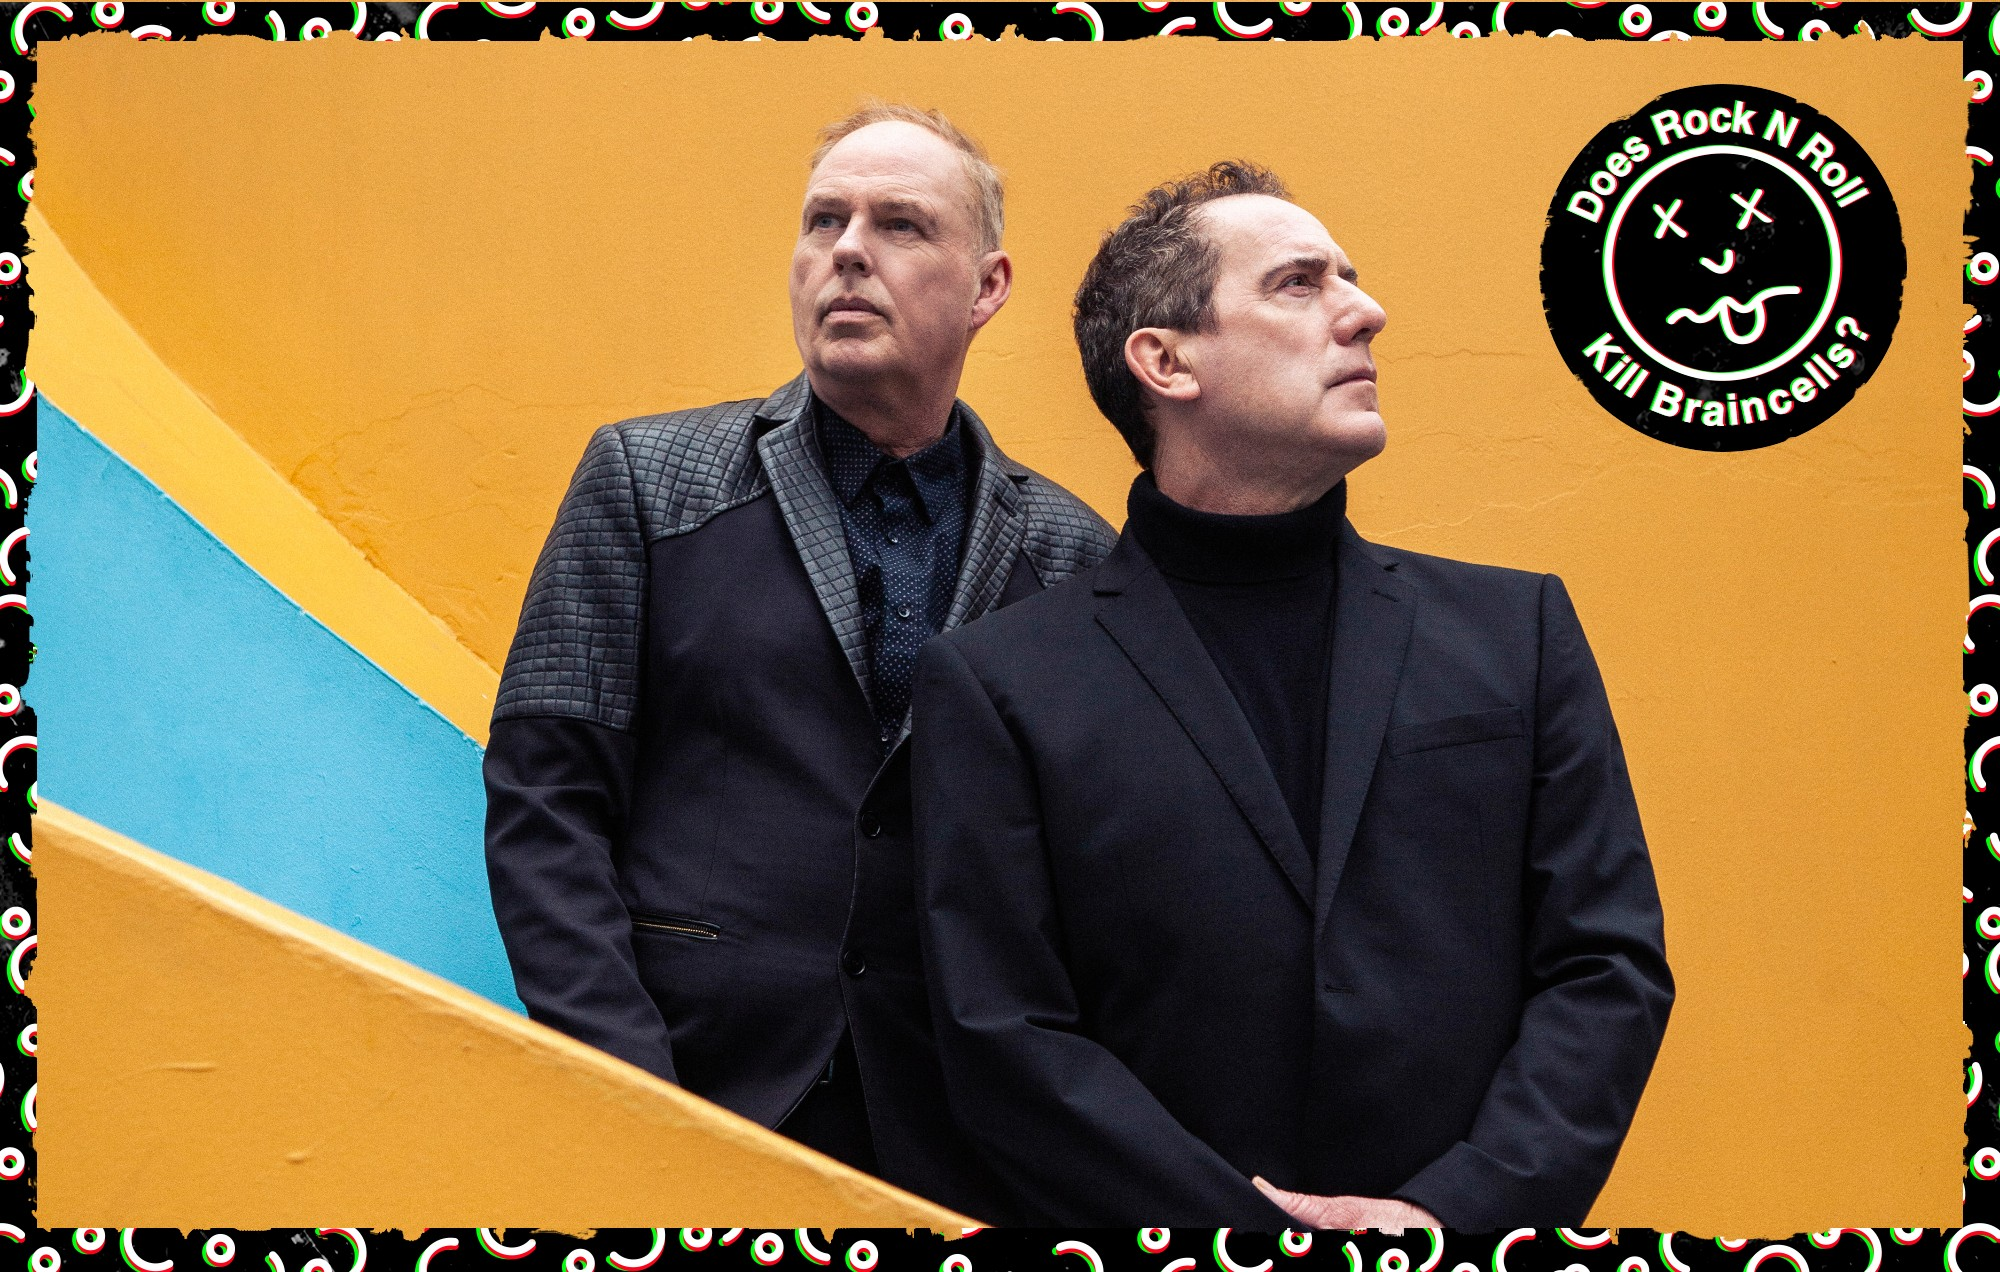 Does Rock 'N'Roll Kill Braincells? Andy McCluskey, OMD - NME interview